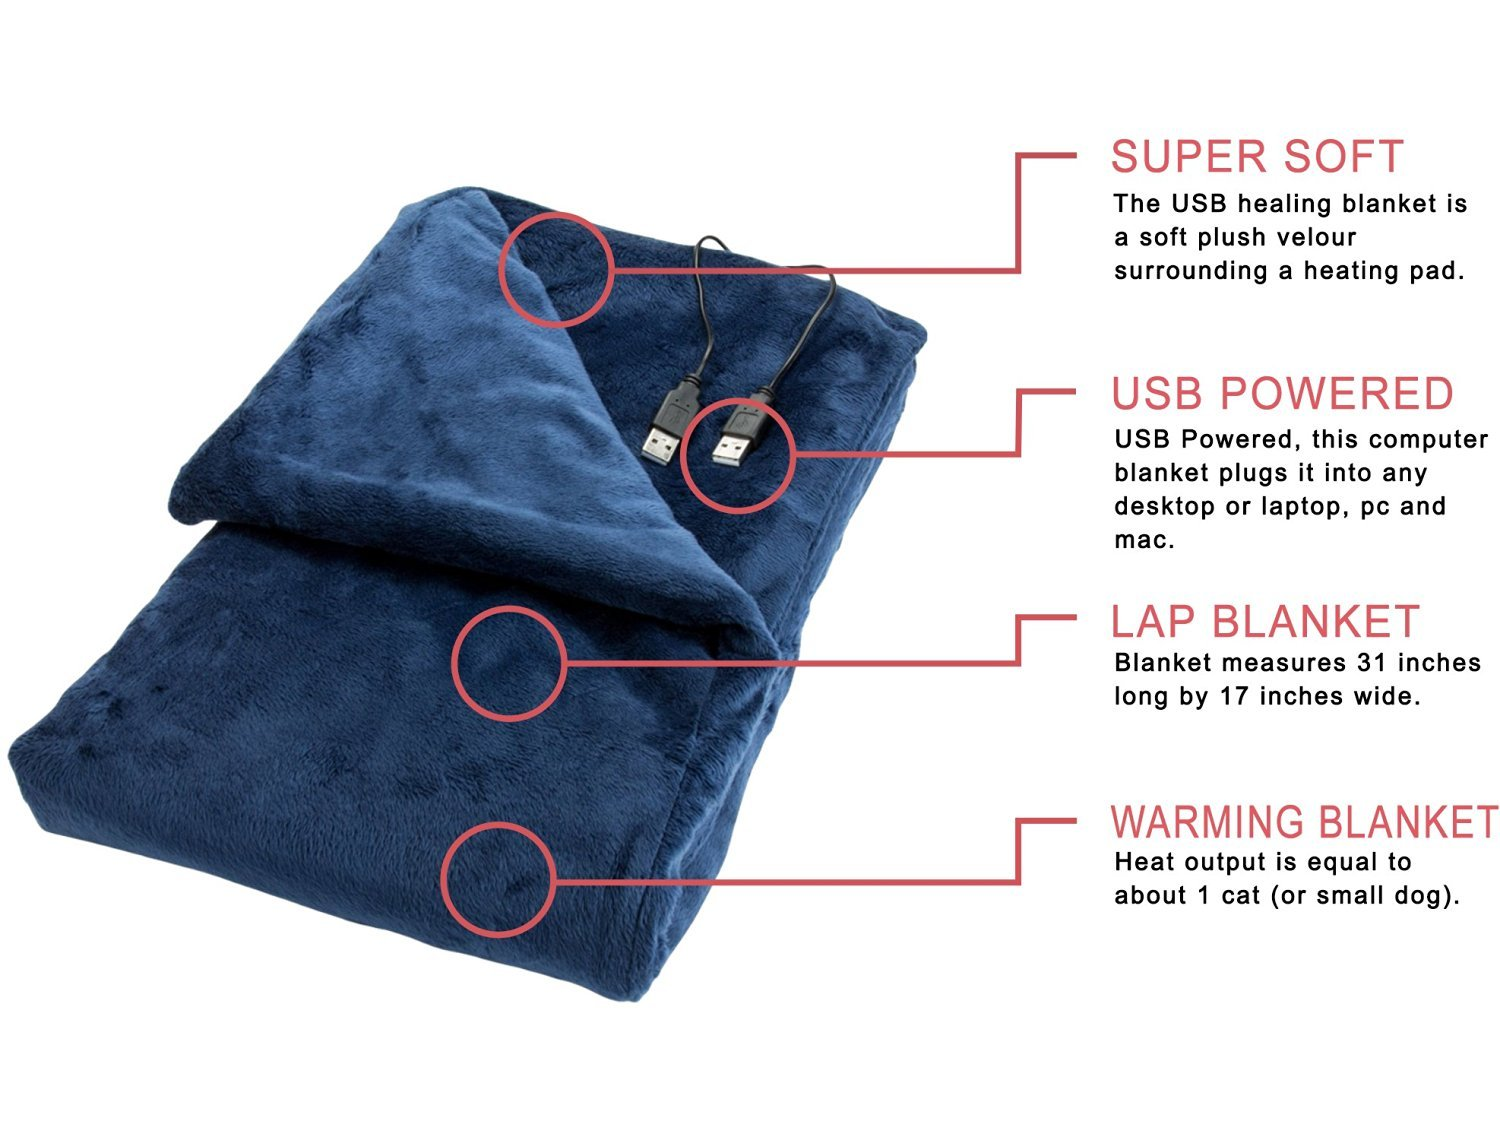 Convenient Gadgets Gifts Usb Heated Shawl And Lap Blanket Blue Mini Color Throw Perfect Alternative To A Office Desk Heater